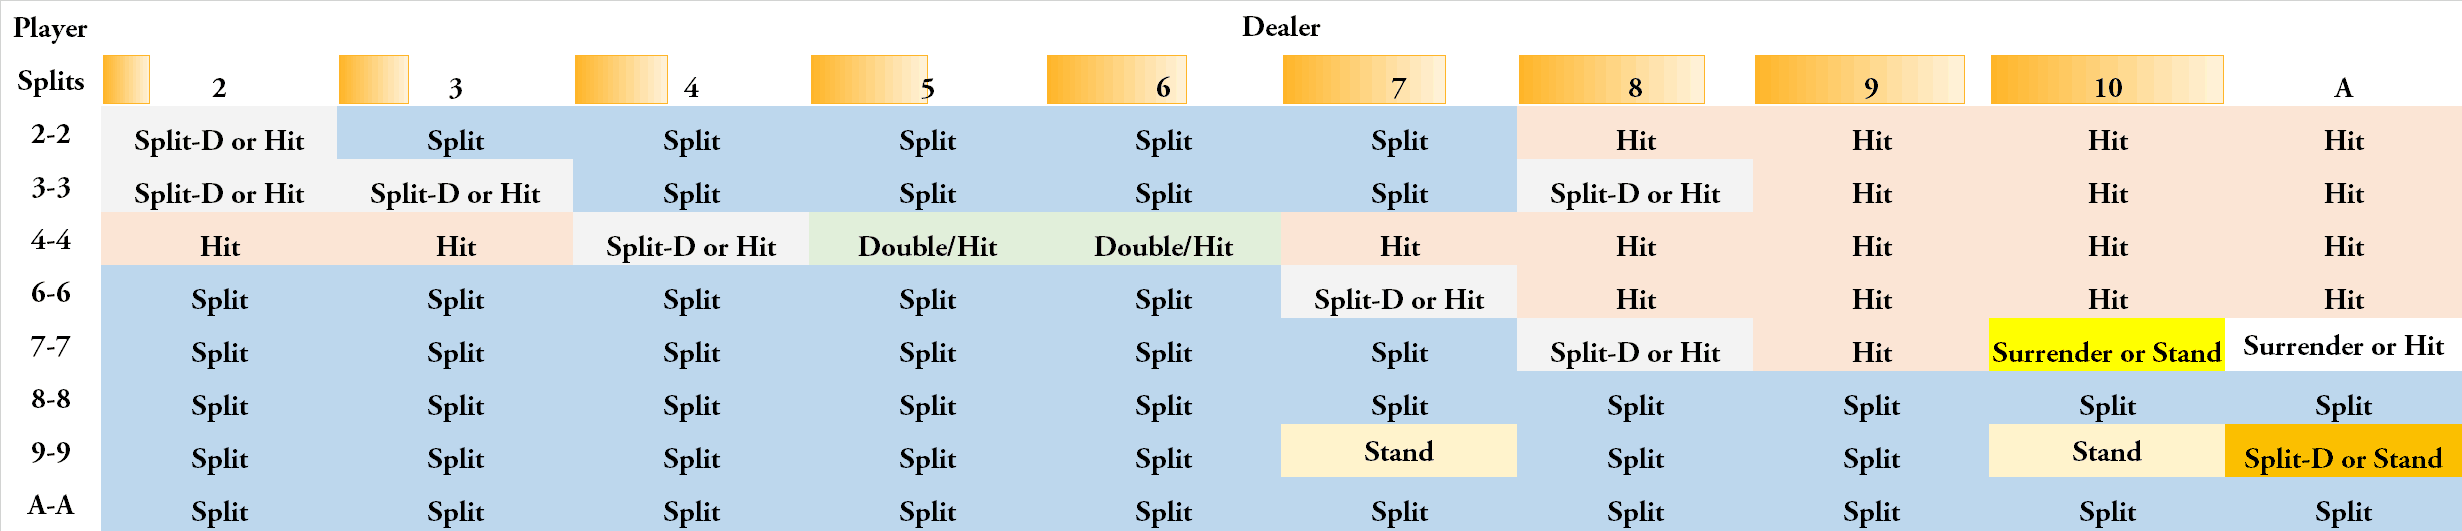 Dealer must hit on soft 17 - table of when you should split